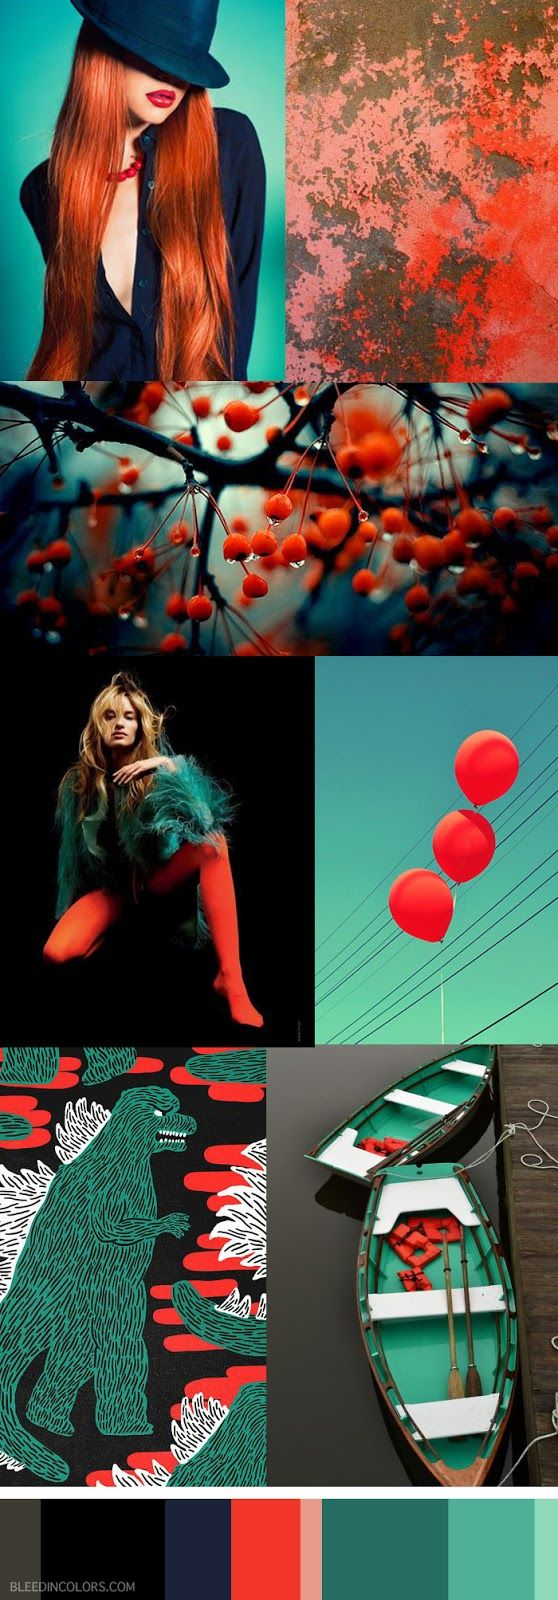 Color Palette // Bleed in Colors. All images are linked to their sources on the…